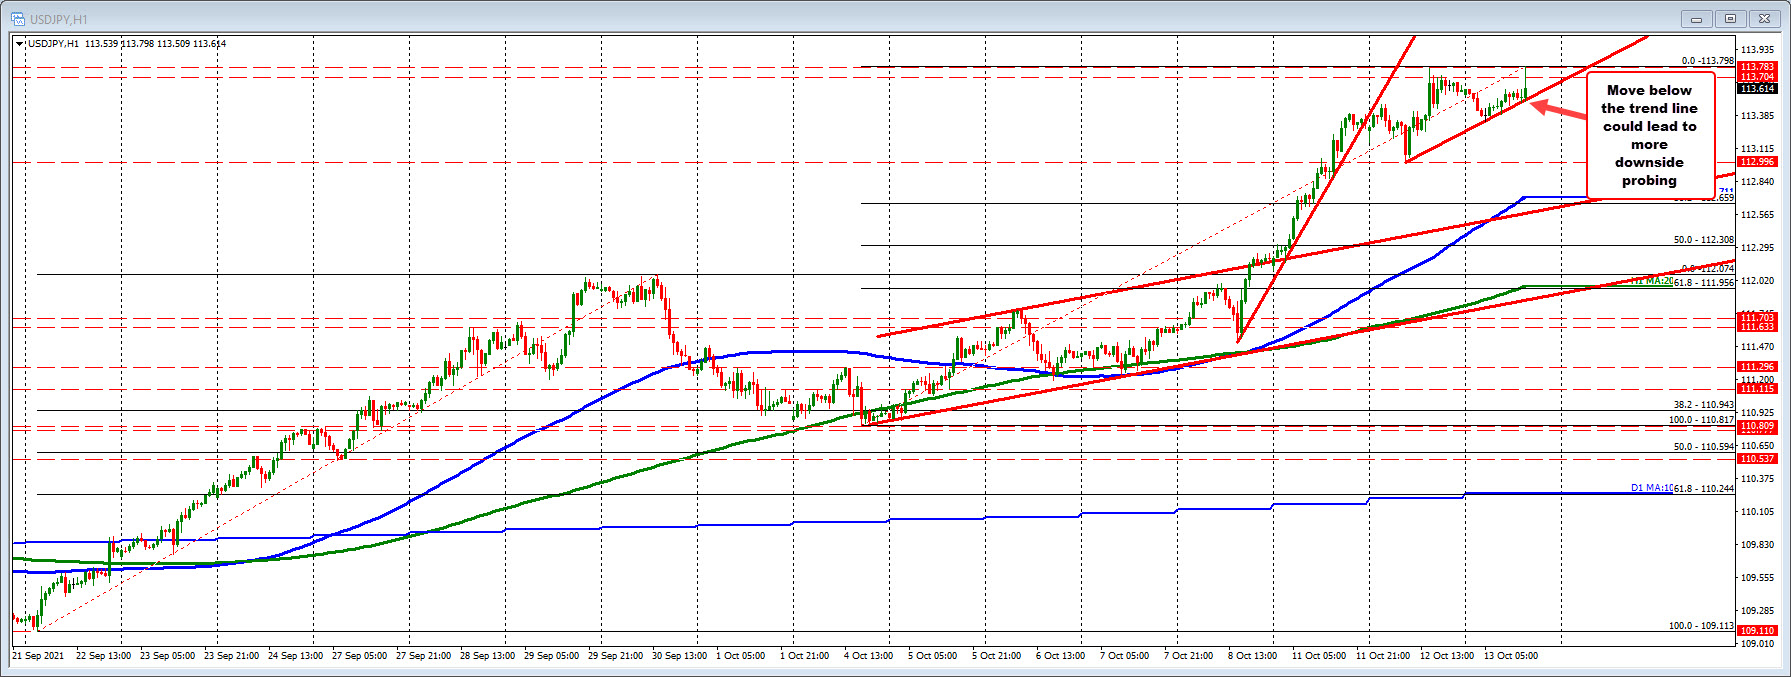 USDJPY hits (barely) a new high for the year and retreats